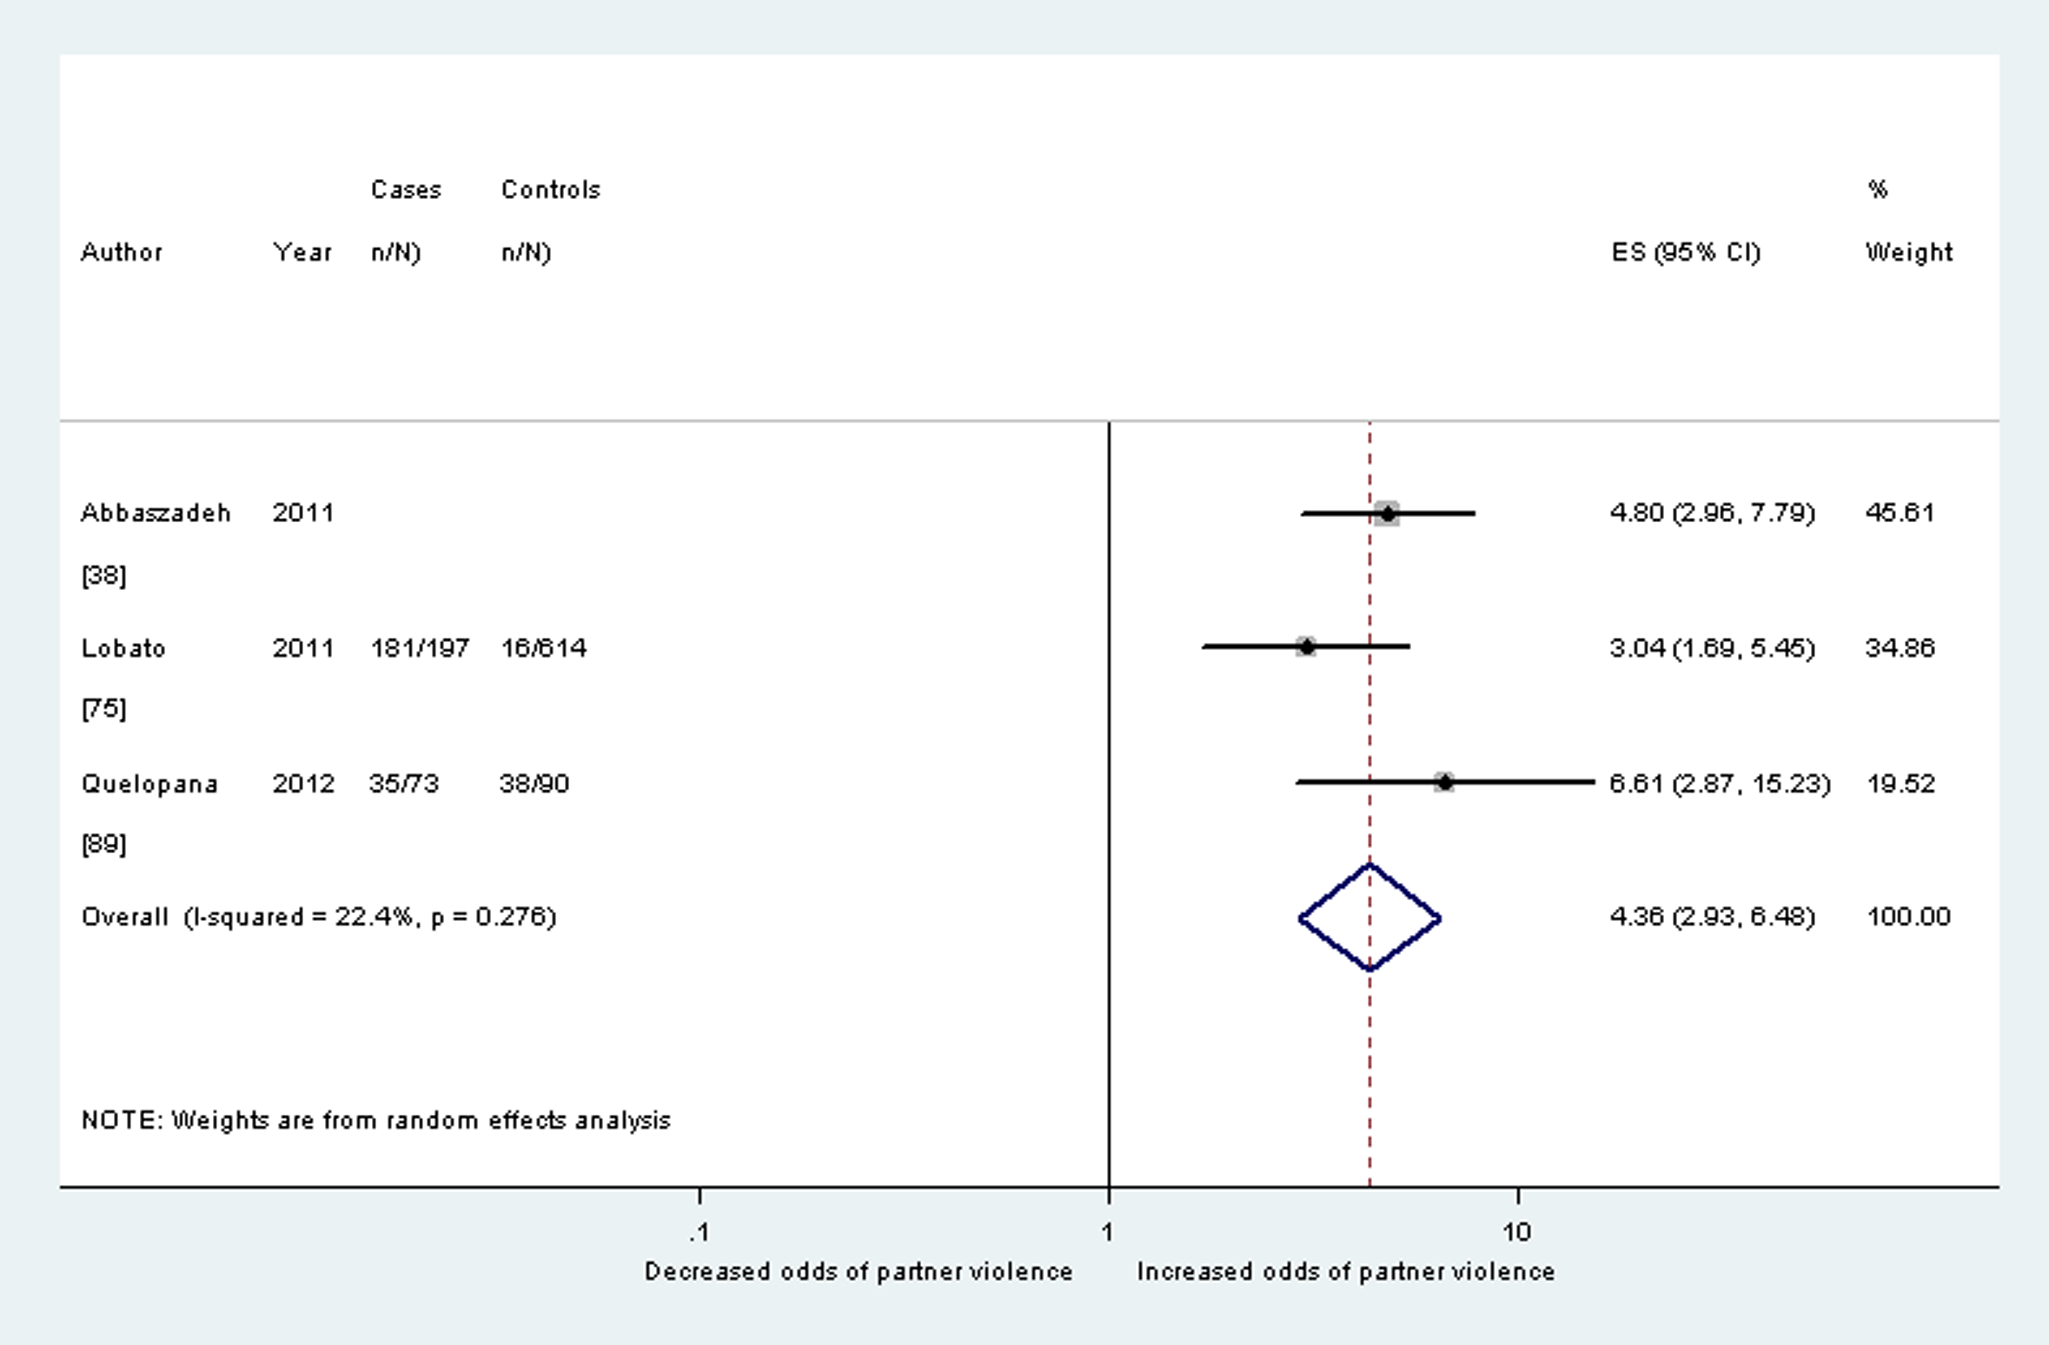 Meta-analysis of the association between postnatal depression and partner violence during pregnancy (cross-sectional studies).